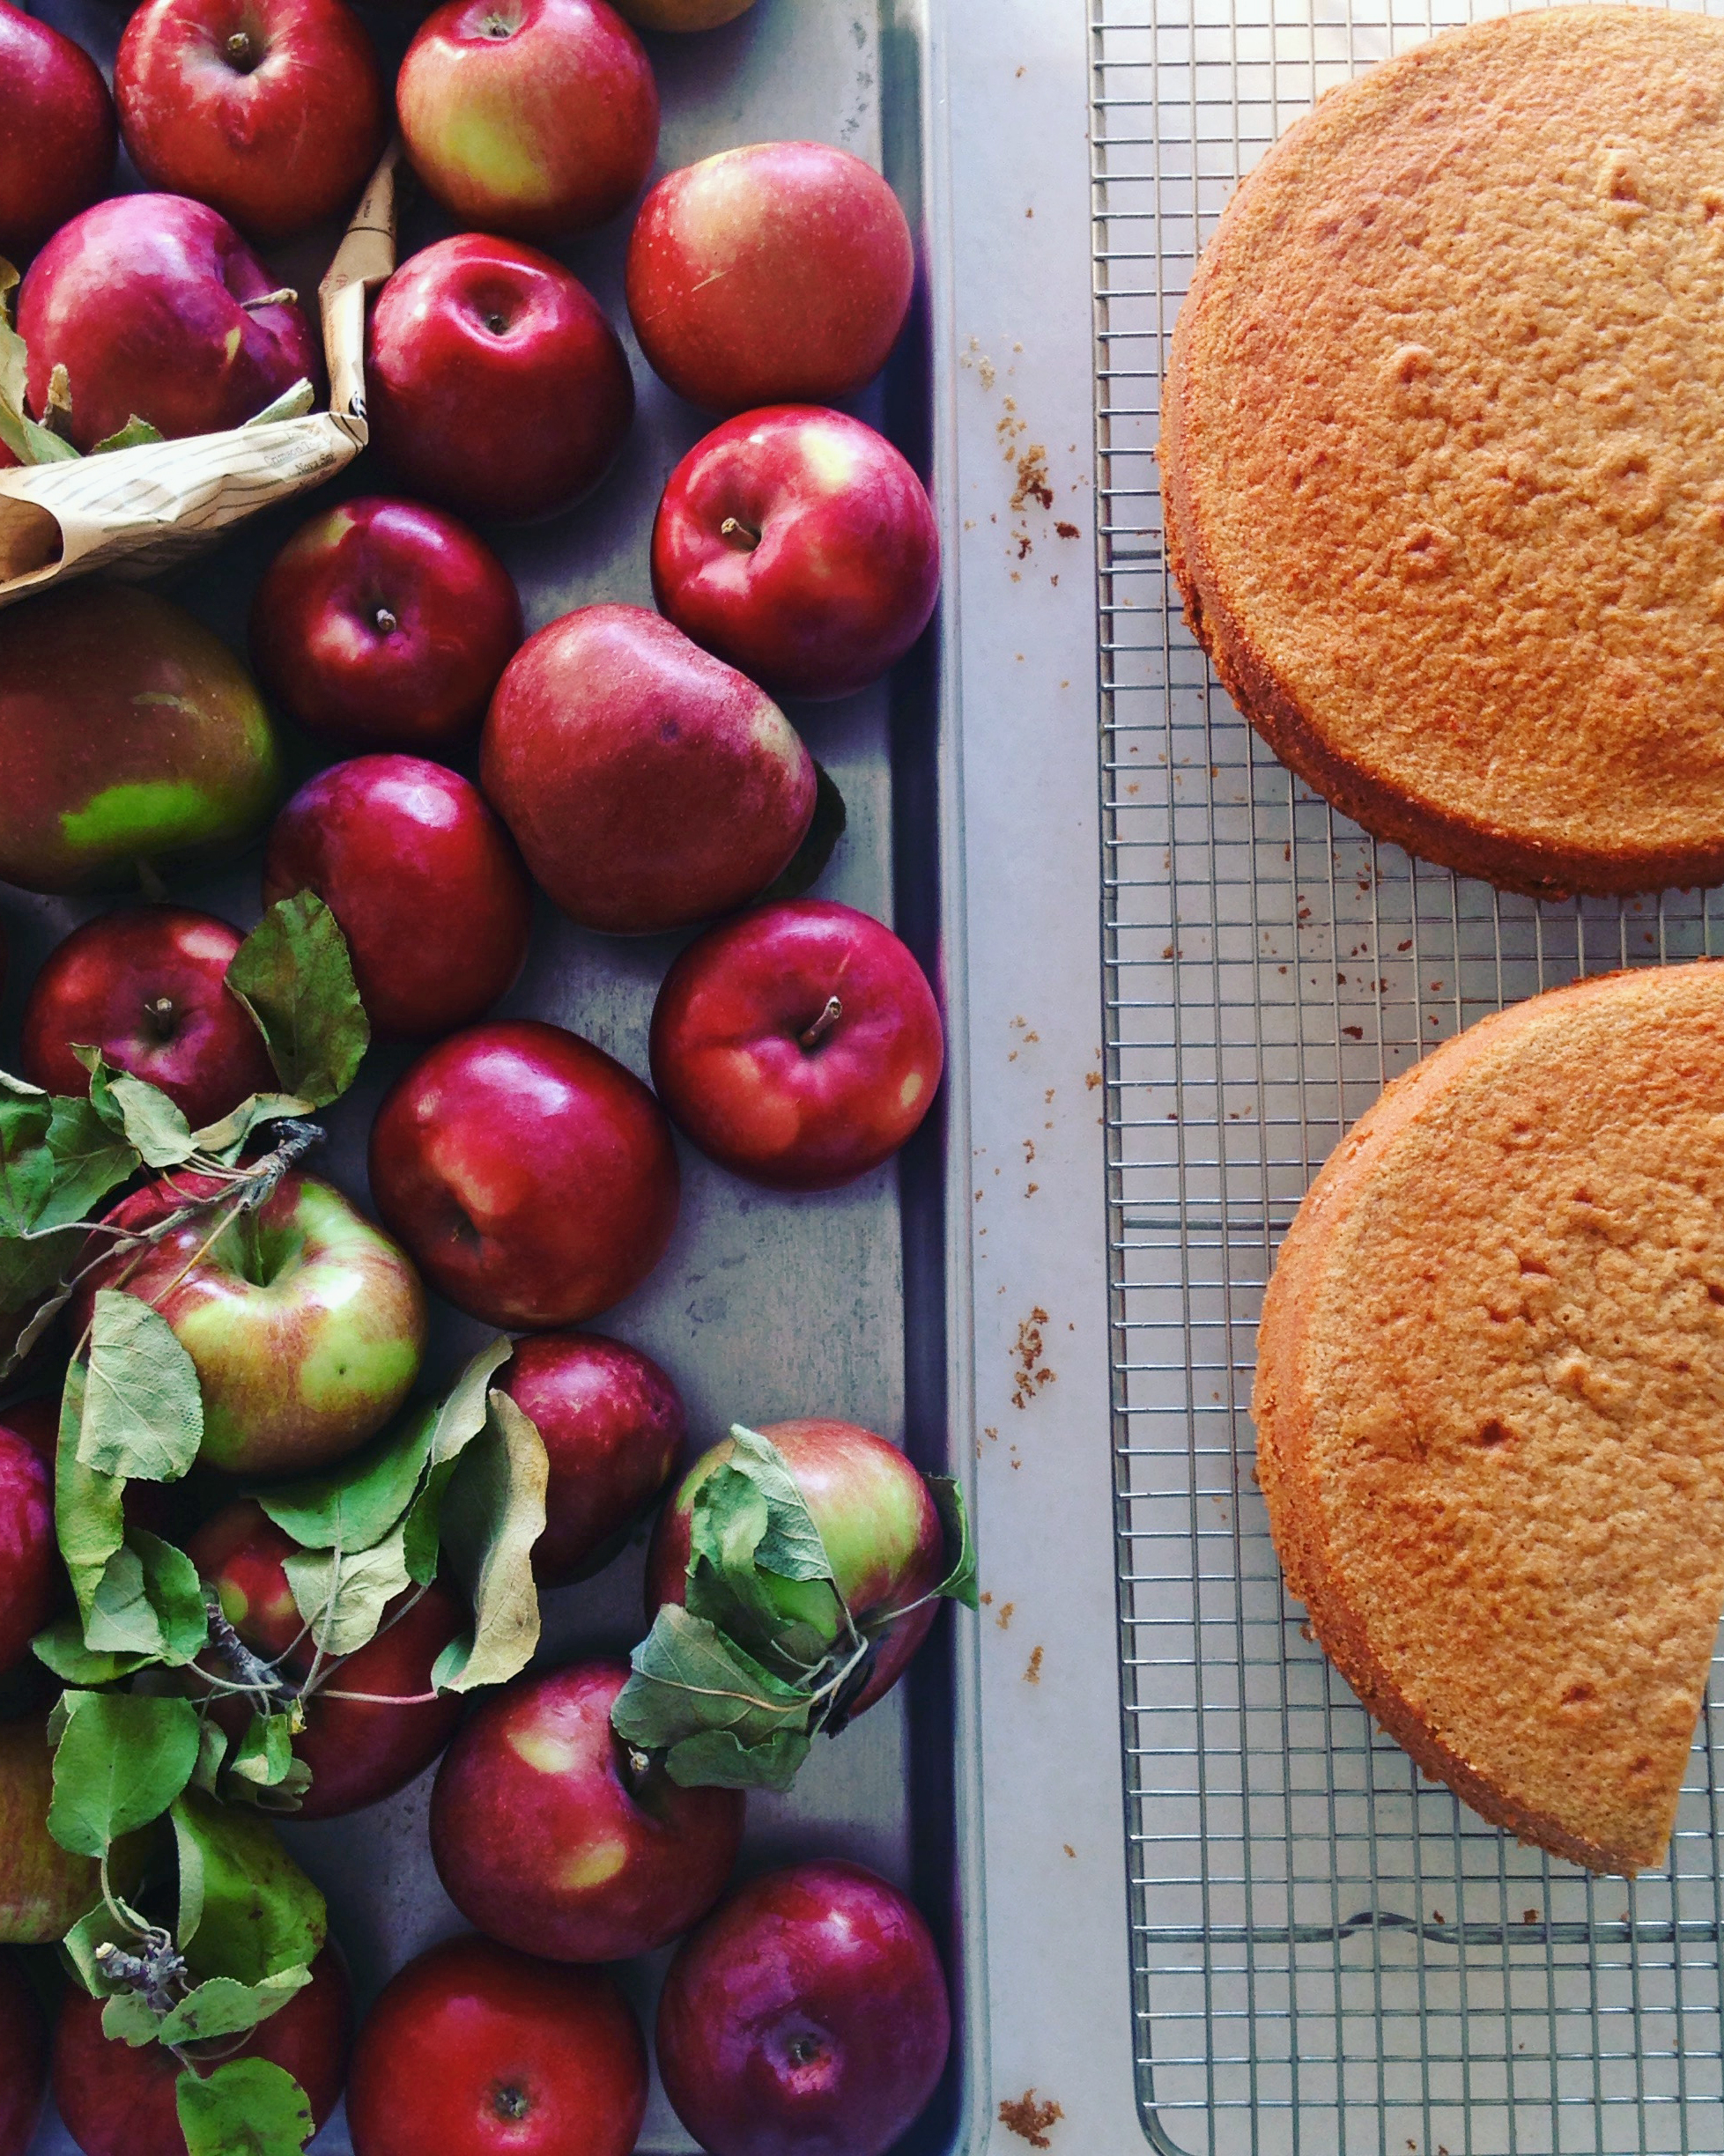 apples-and-cake-4-1015.jpg